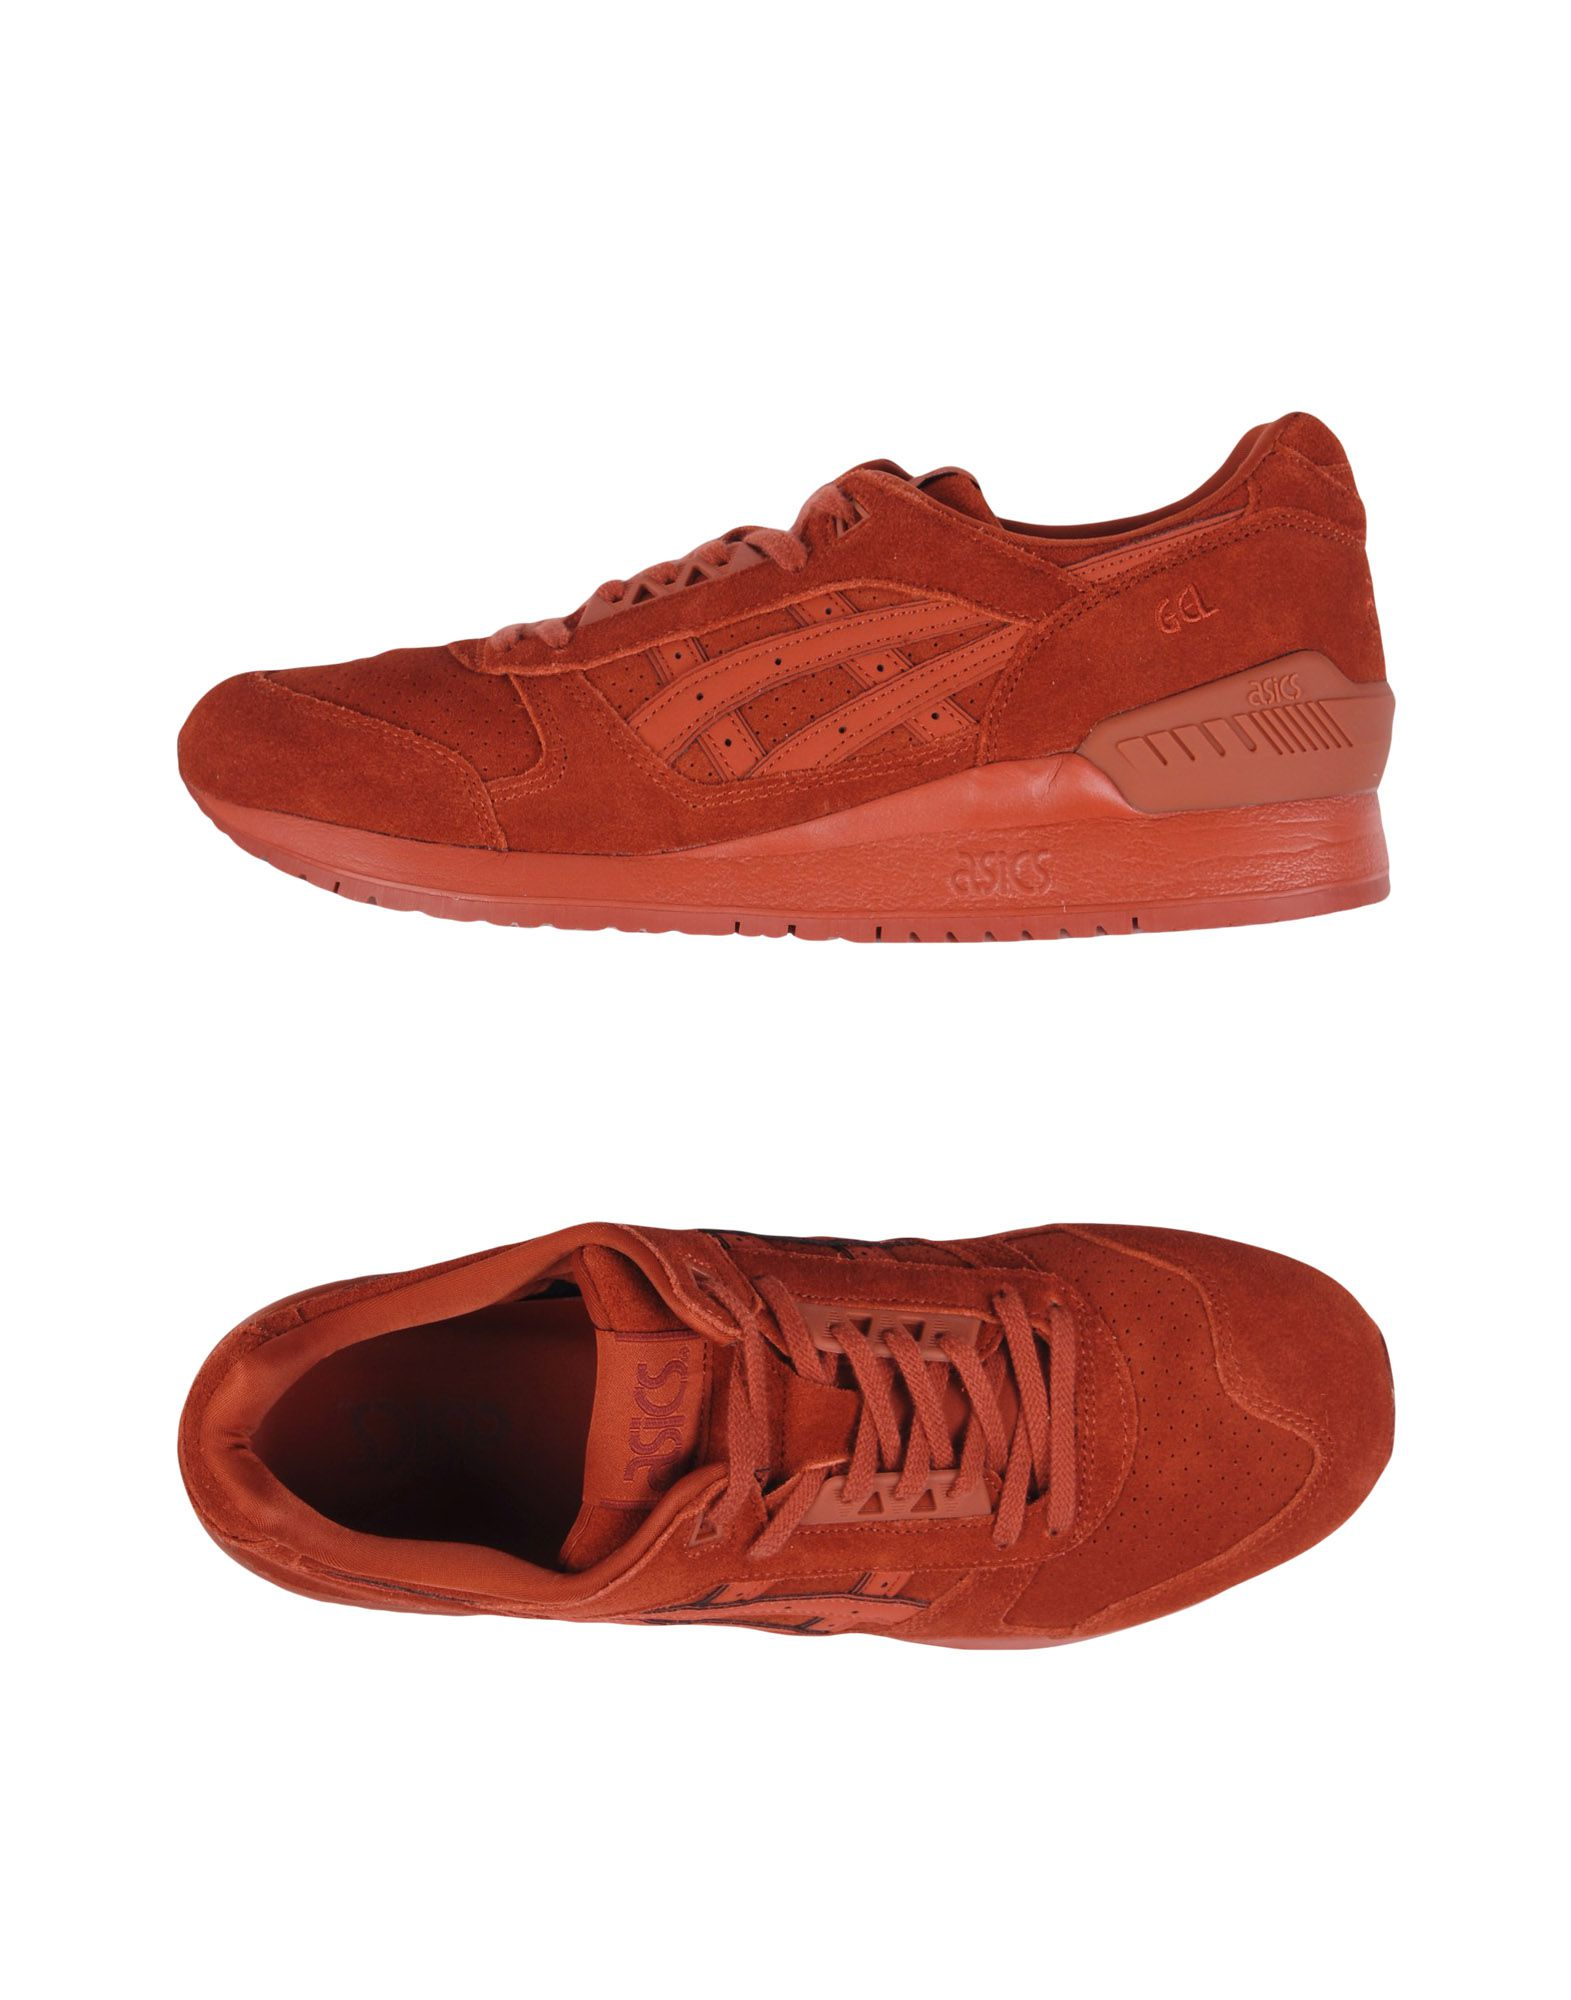 Sneakers Asics Tiger Gel-Respector - Homme - Sneakers Asics Tiger sur